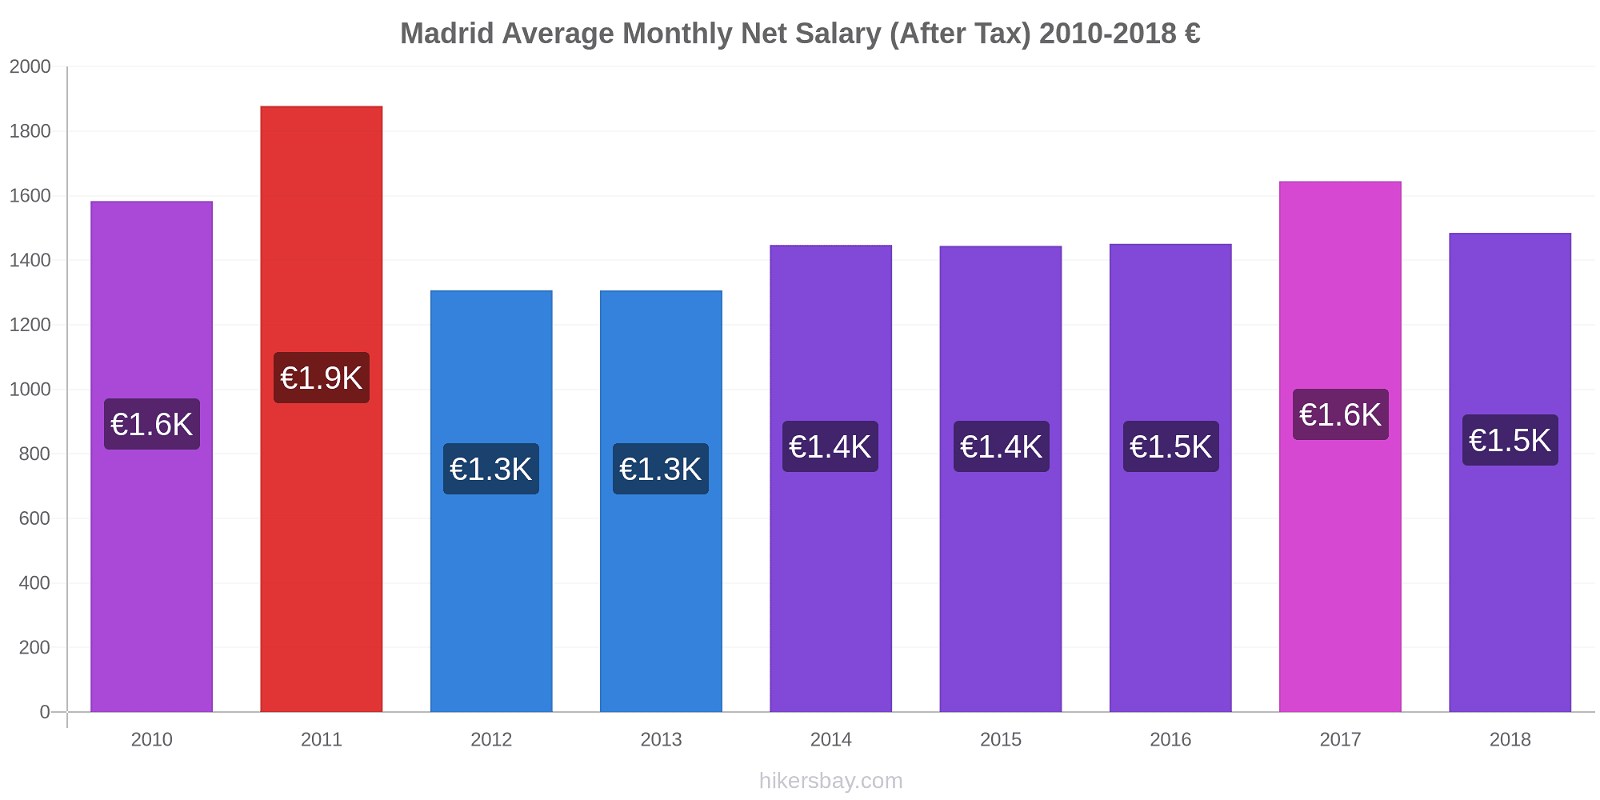 Madrid price changes Average Monthly Net Salary (After Tax) hikersbay.com